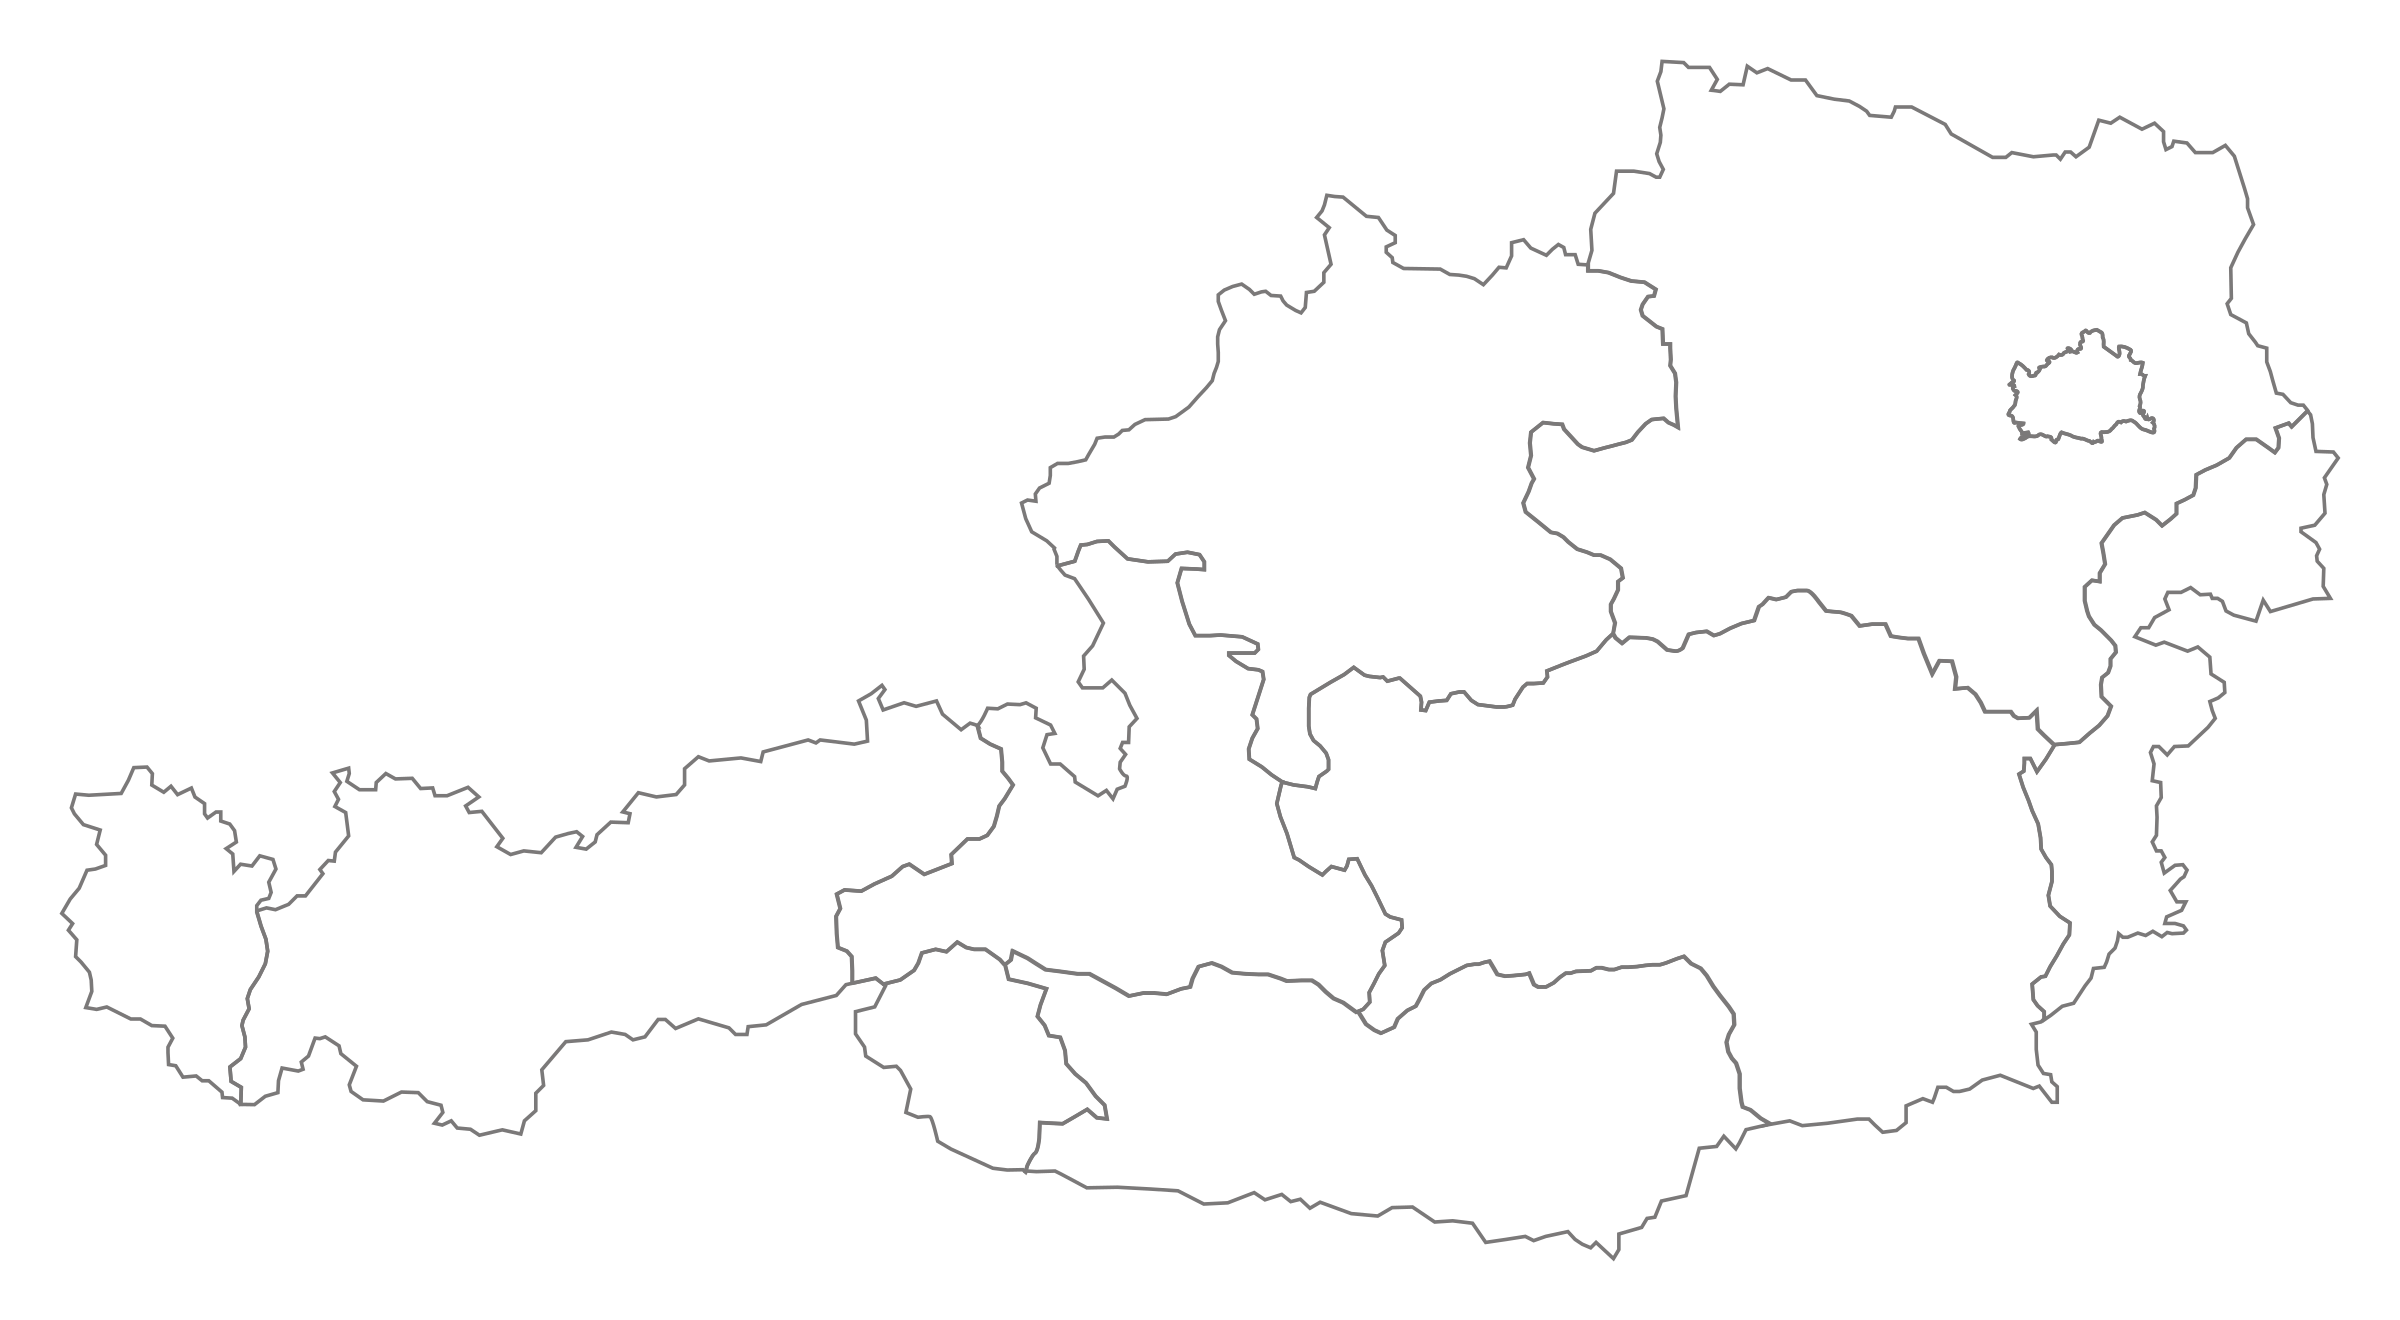 Clipart Empty Map Of Austria With Borders Of The States - World map austria